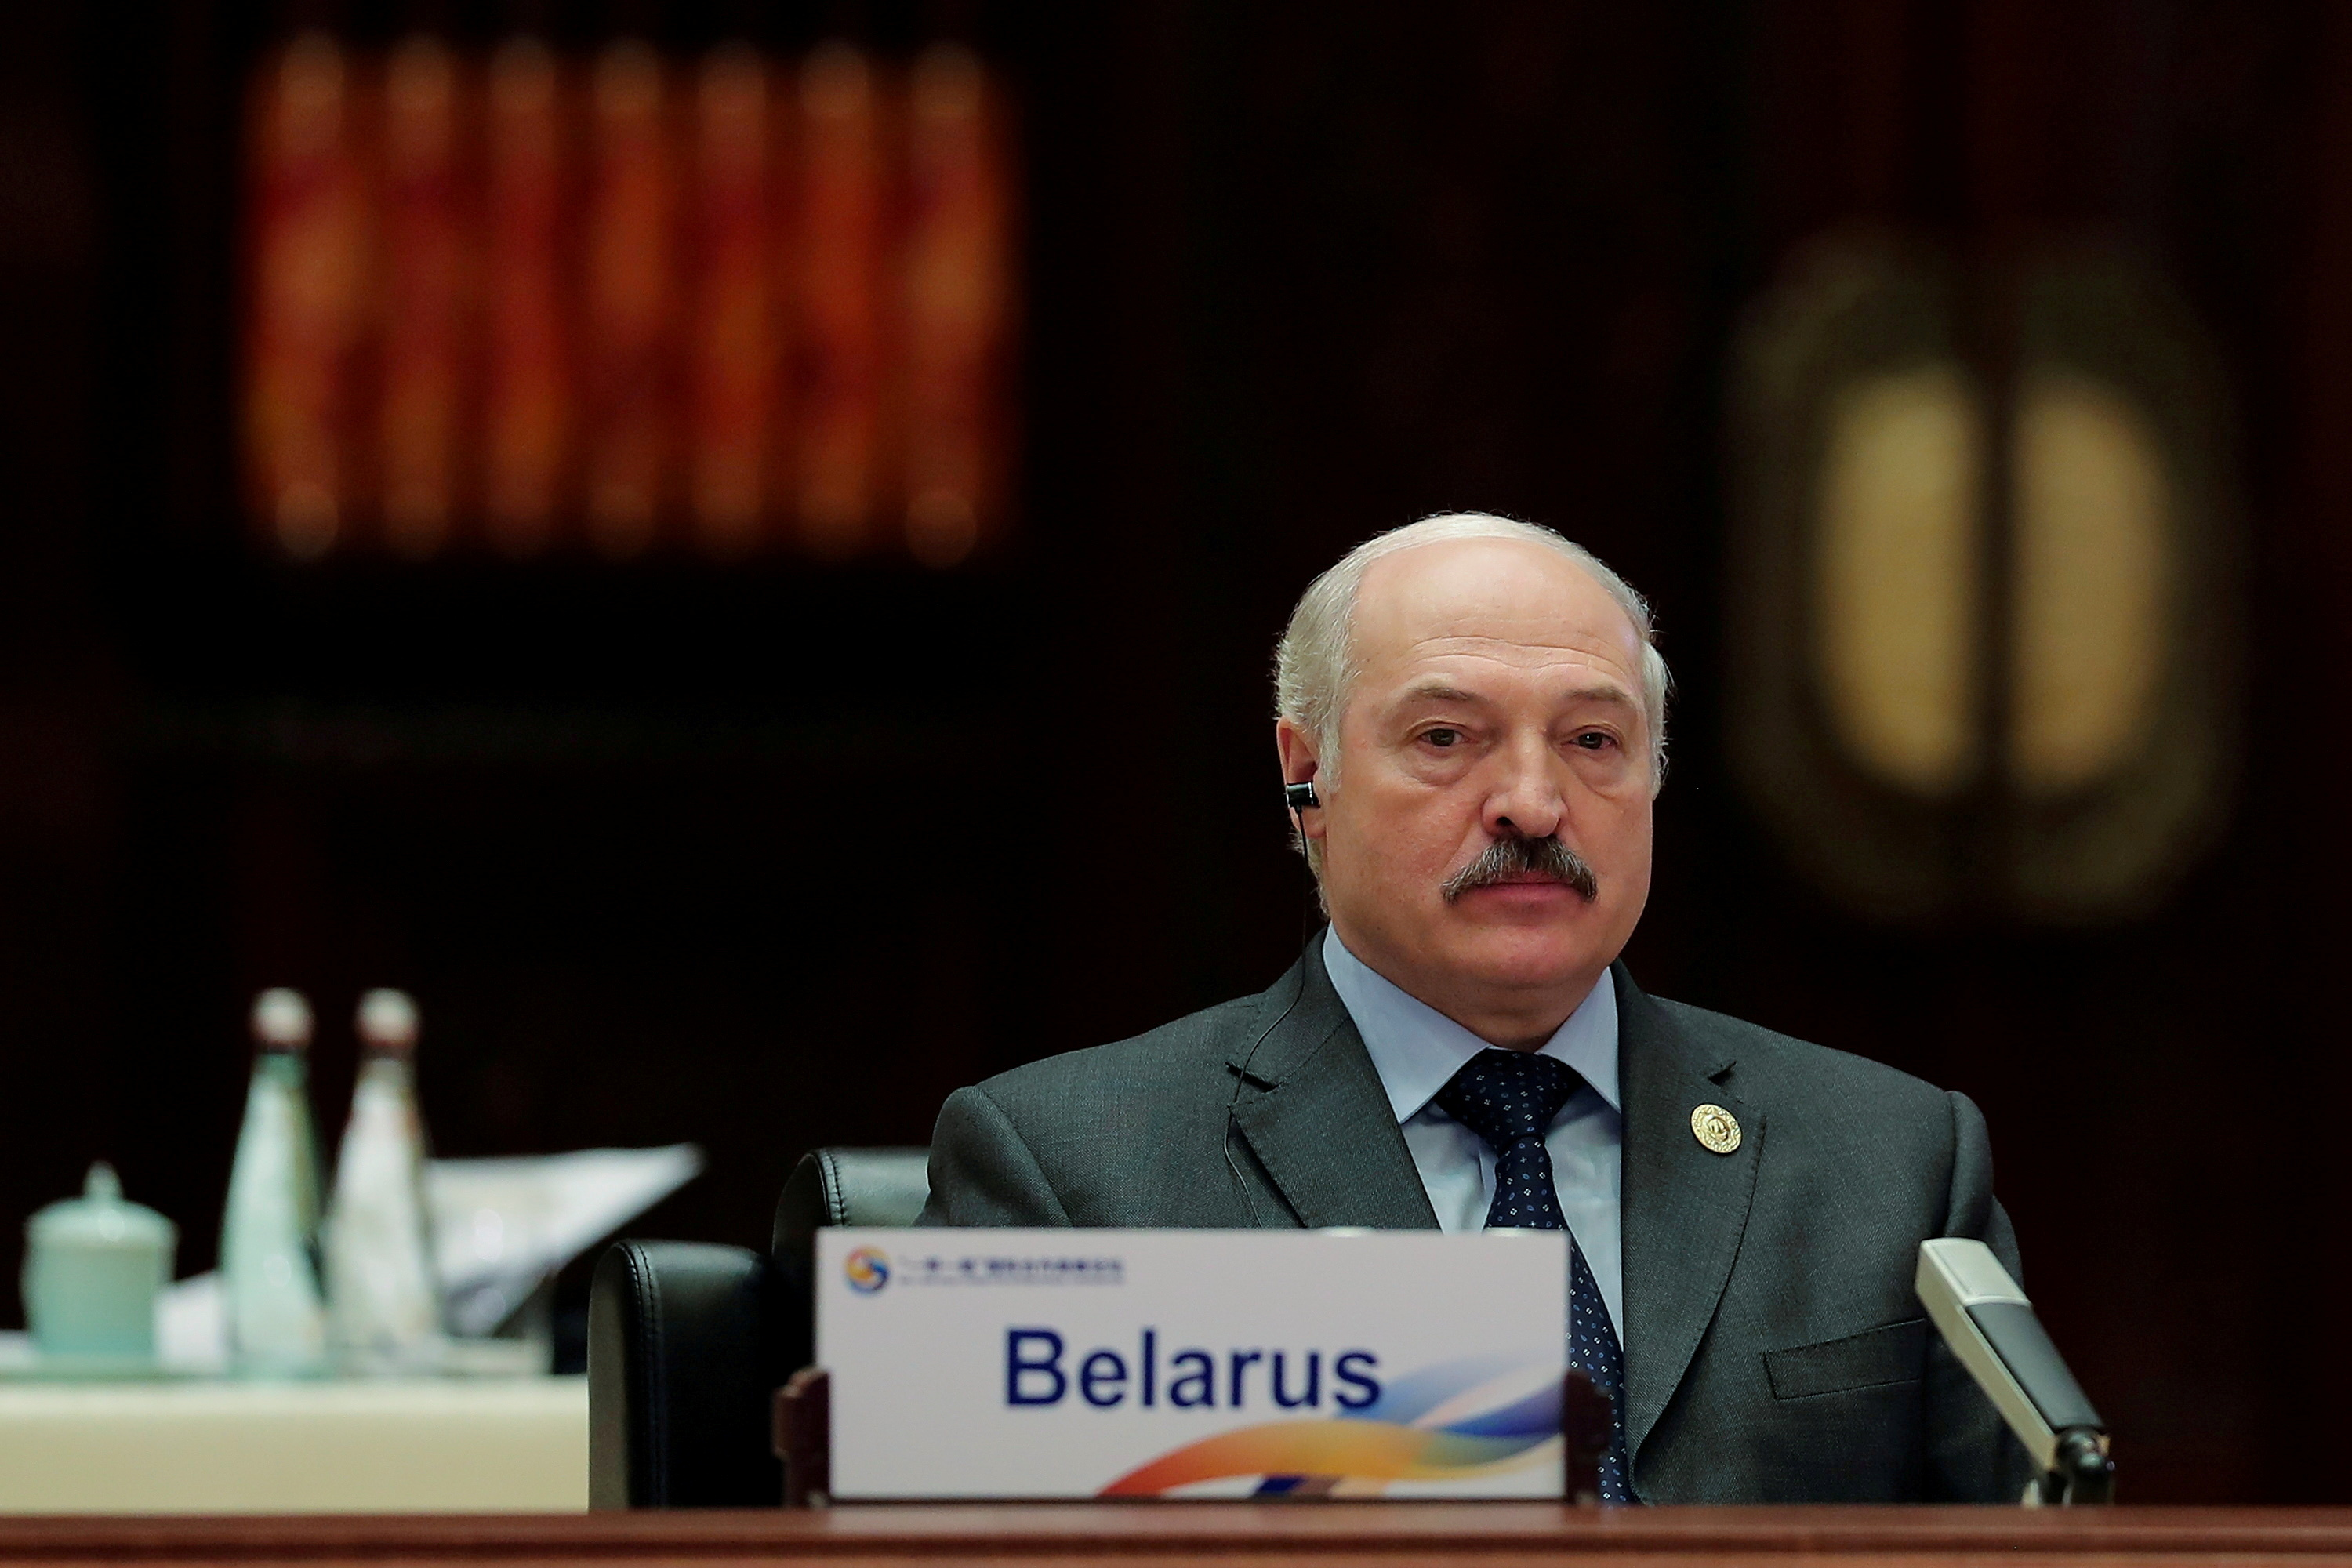 Belarus President Alexander Lukashenko attends the Roundtable Summit Phase One Sessions of Belt and Road Forum at the International Conference Center in Yanqi Lake on May 15, 2017 in Beijing, China.   REUTERS/Lintao Zhang/Pool/File Photo